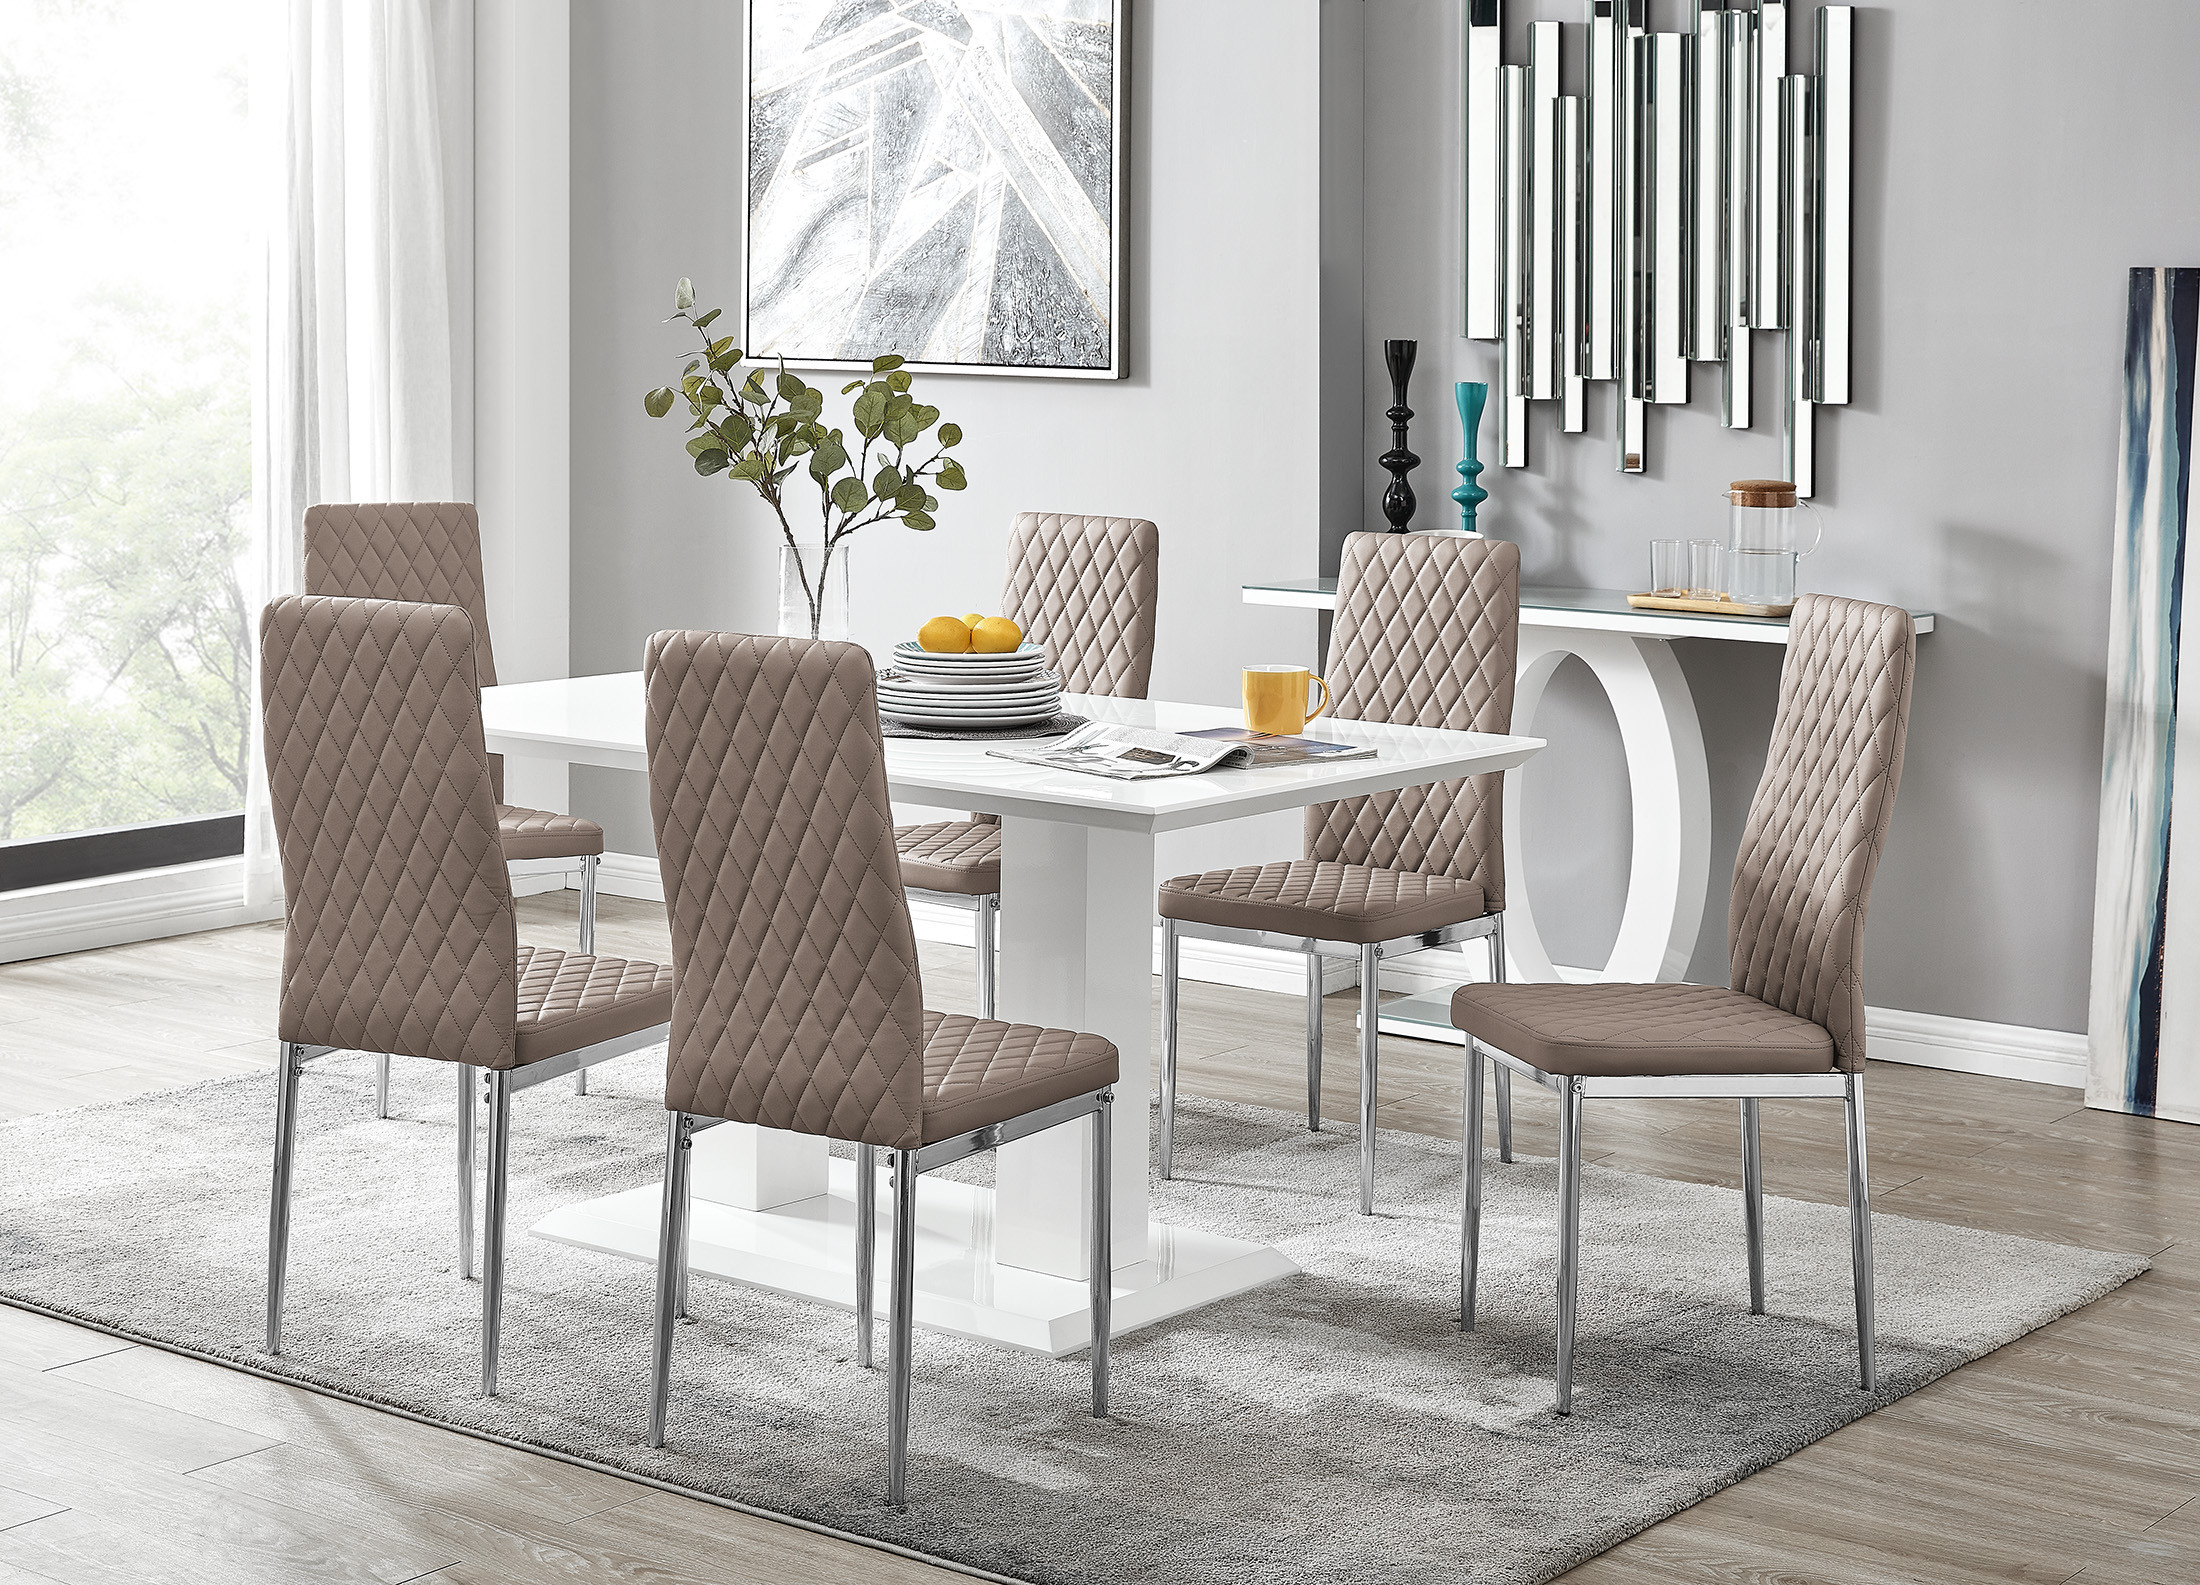 Gloss Dining Table 6 Milan Chairs, High Quality Dining Room Sets